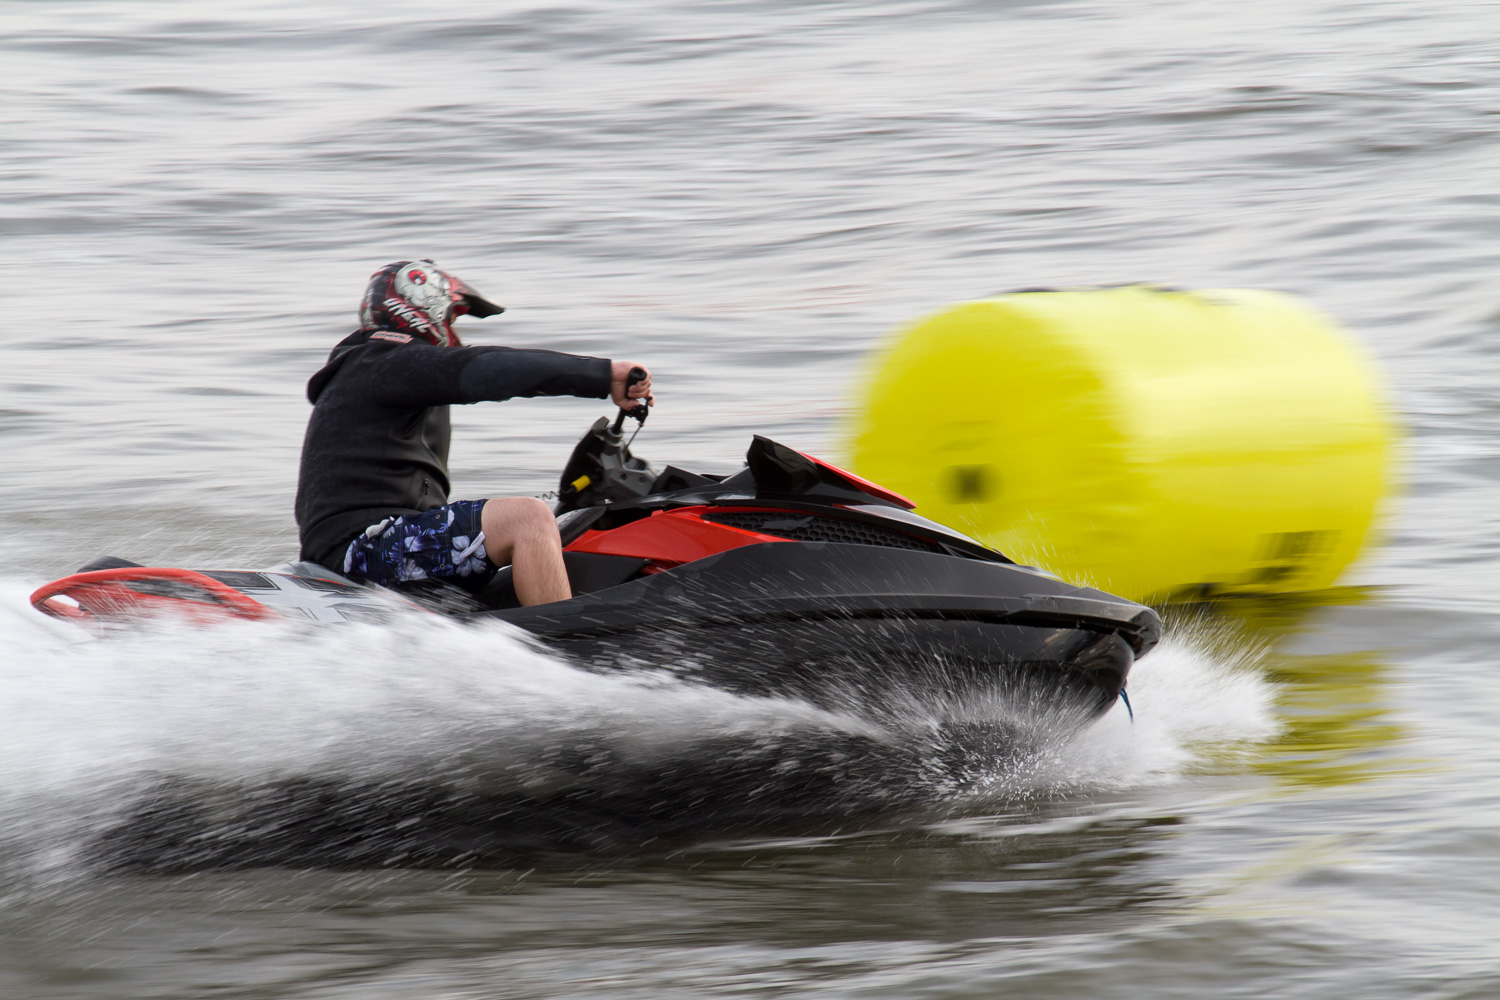 Jetski Event at the Heringsdorf Pier on Usedom